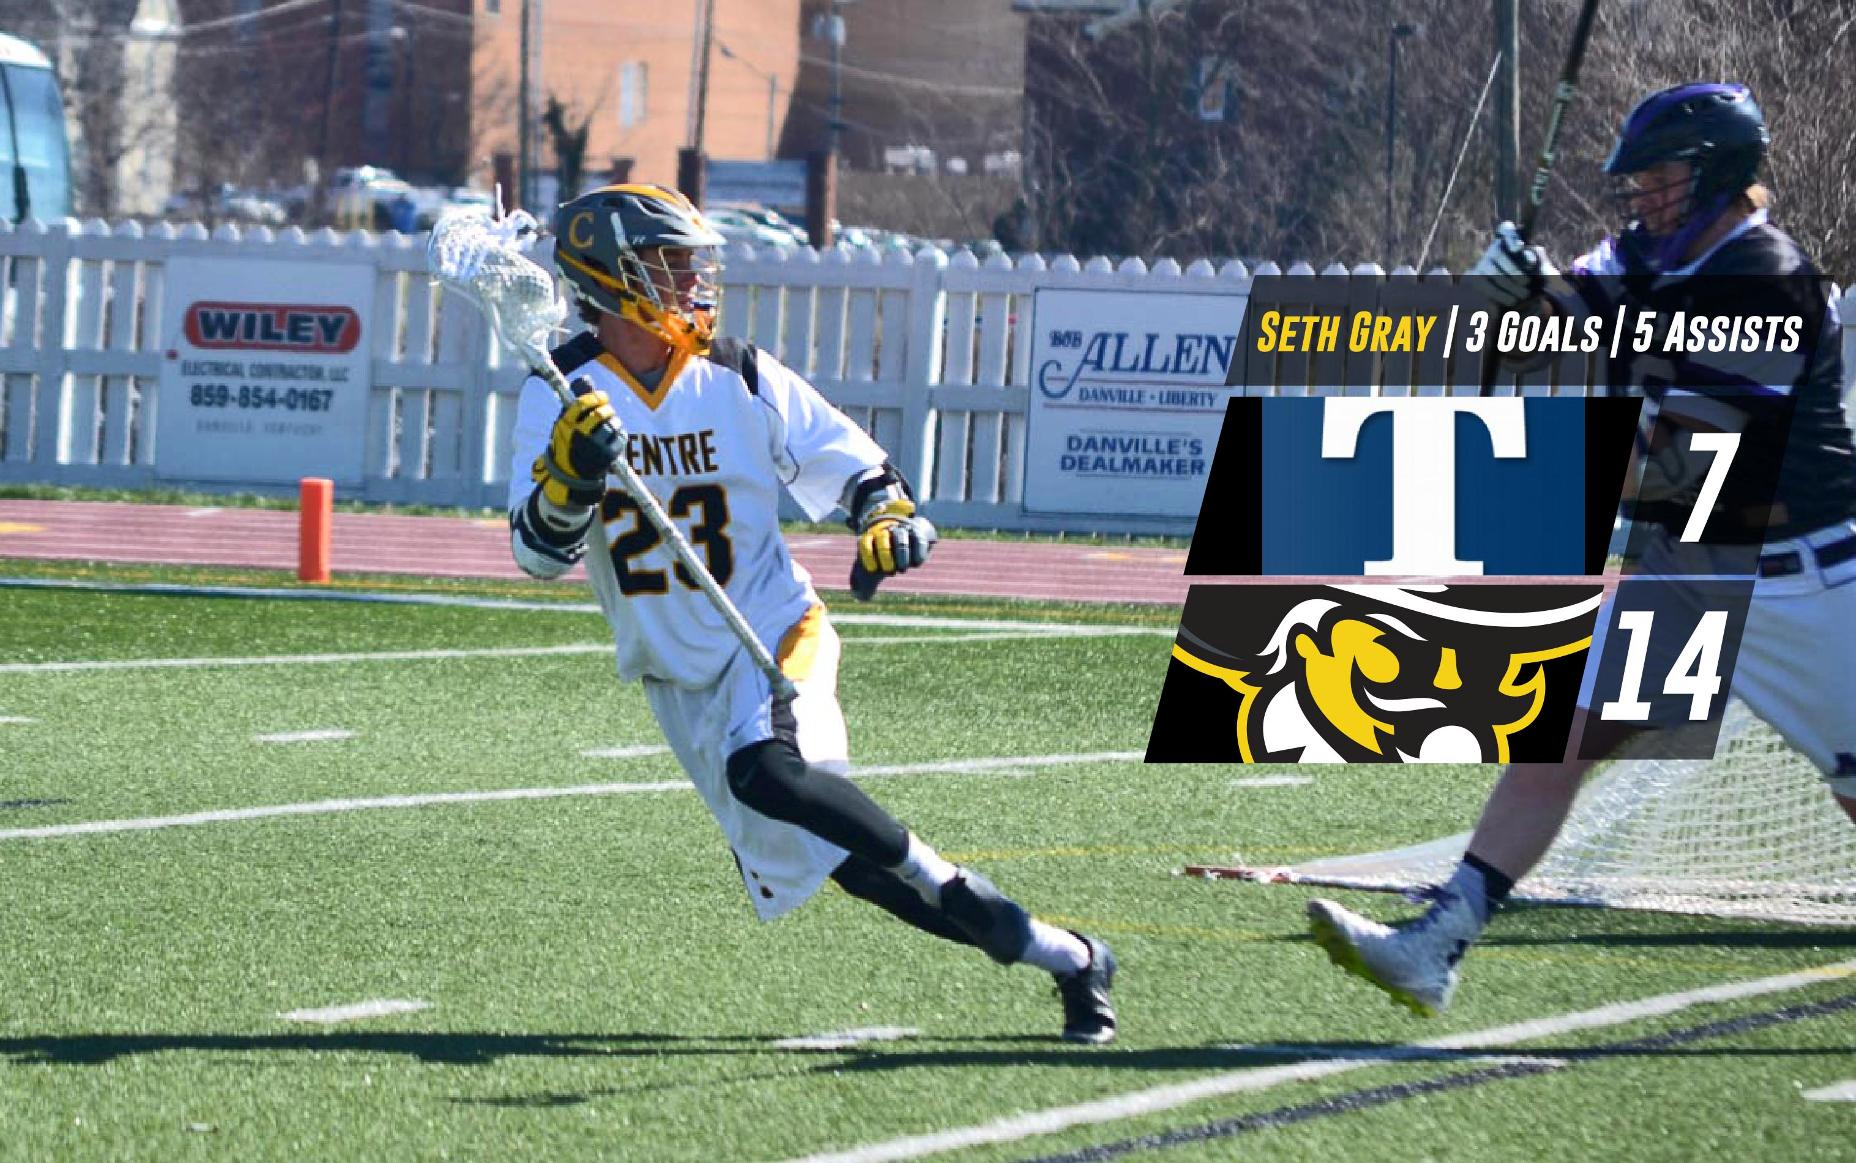 Strong Second Half Pushes Centre to 14-7 Win over Trine - Centre College